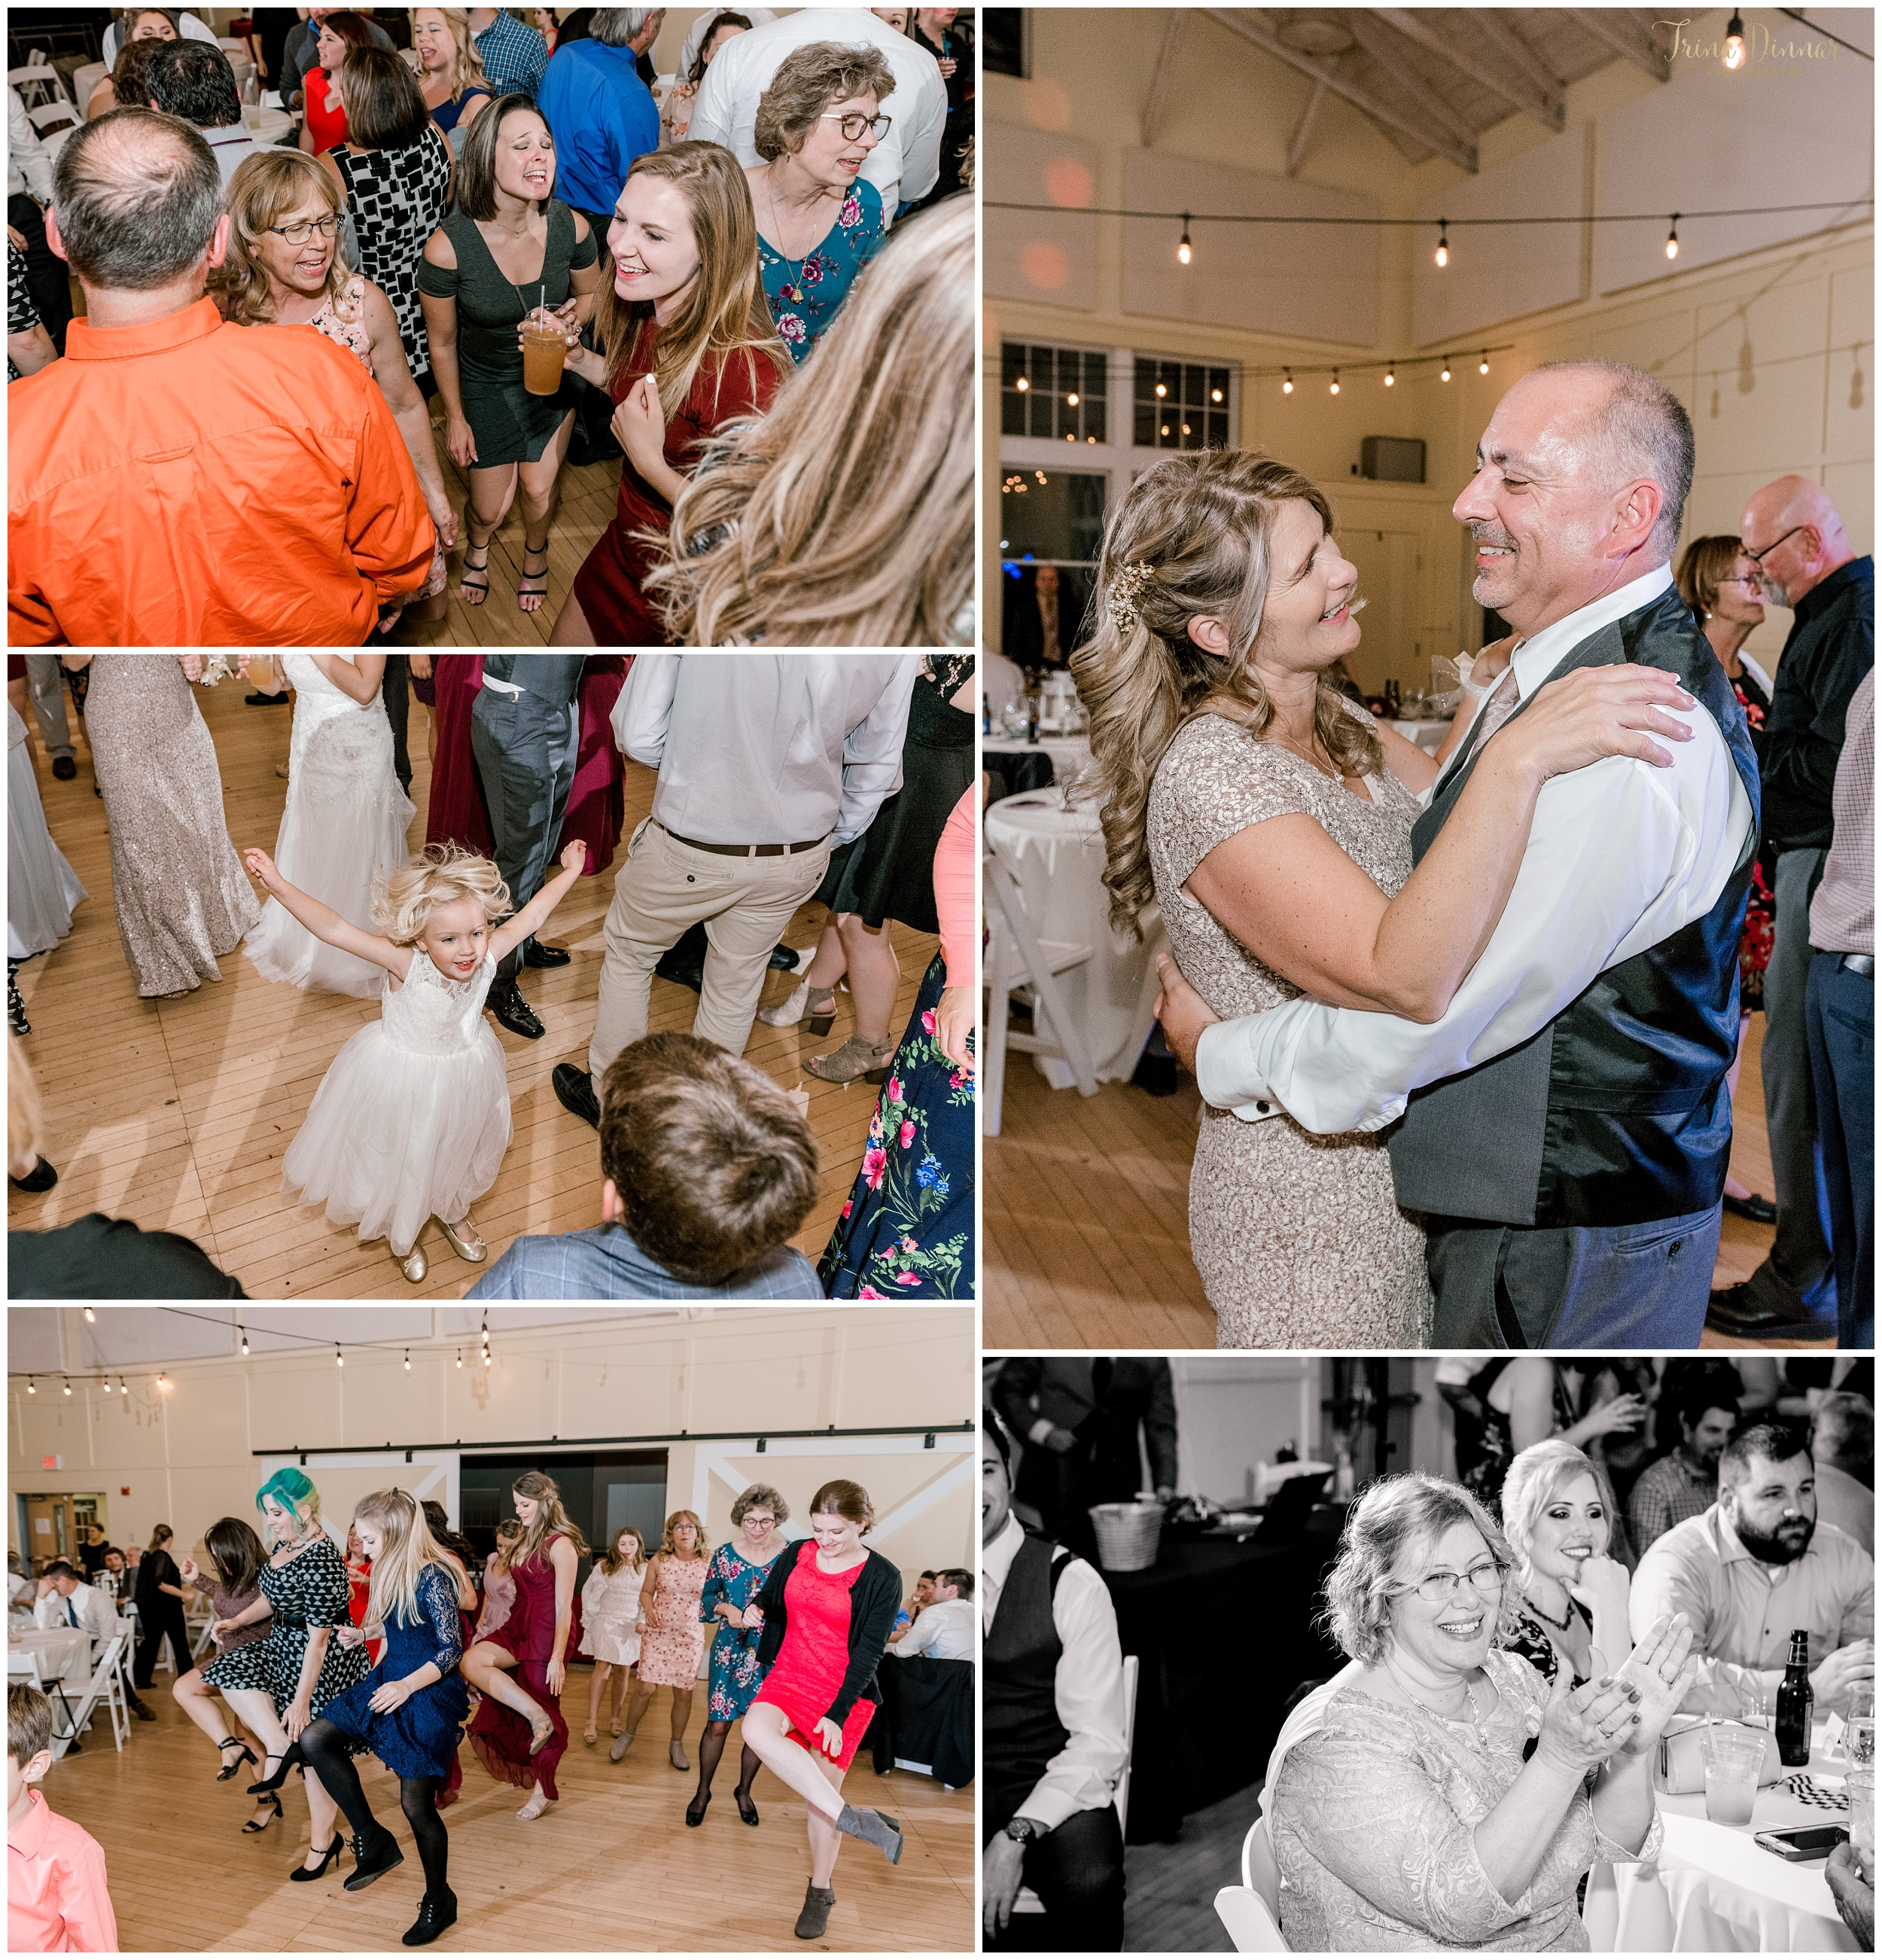 Dancing at rustic Maine wedding reception